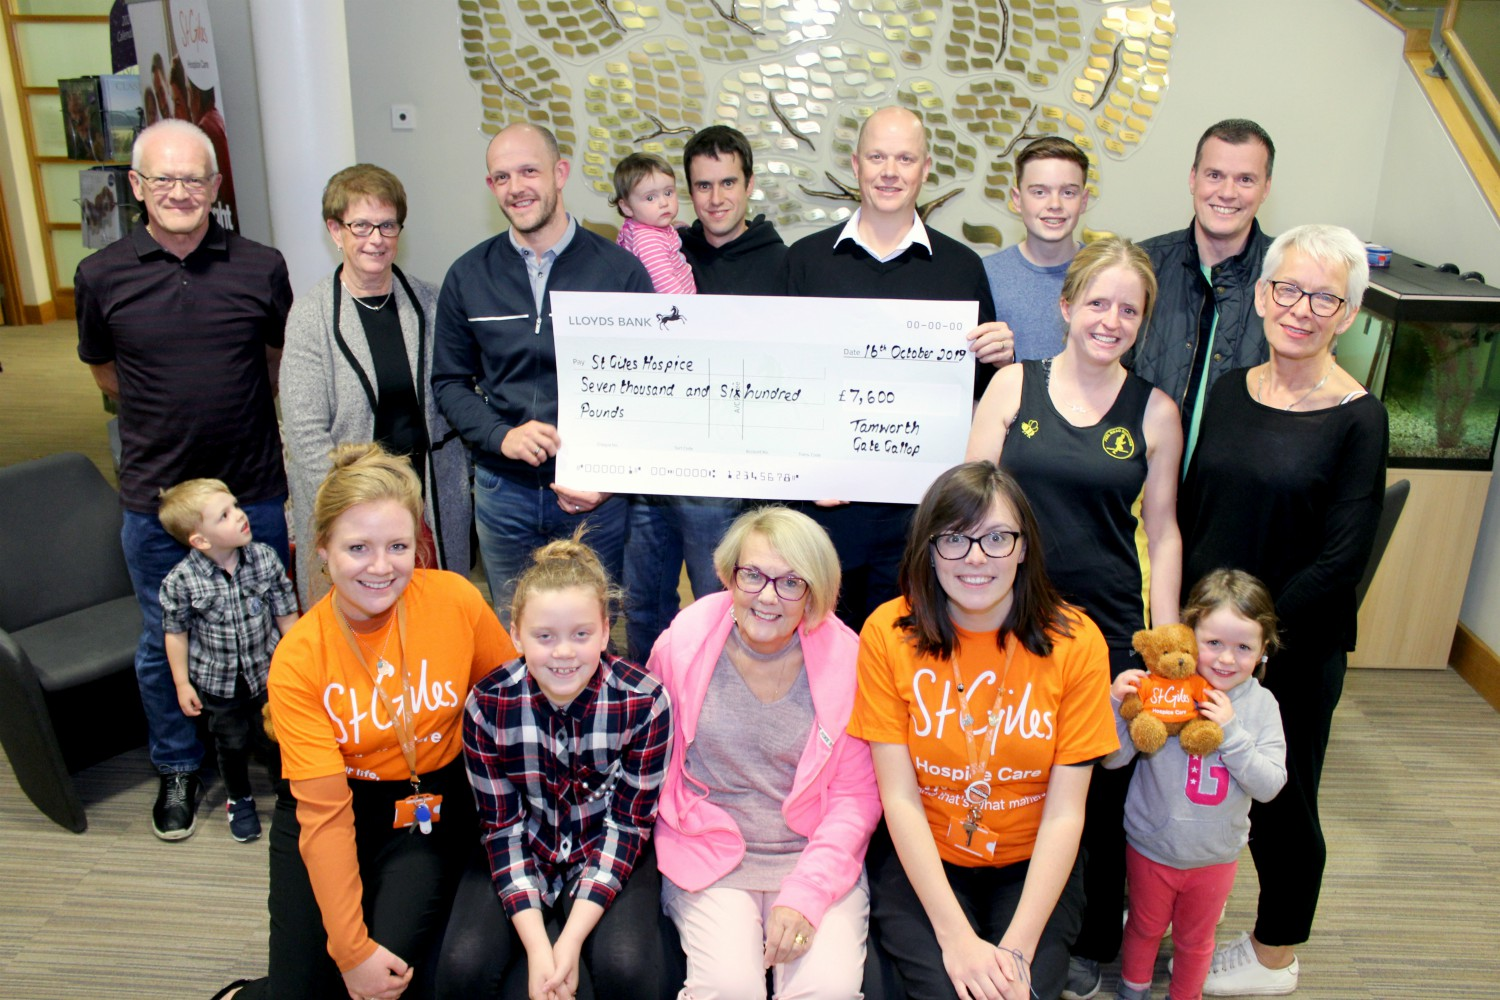 Tamworth Gate Gallop raises £7,600 for St Giles Hospice